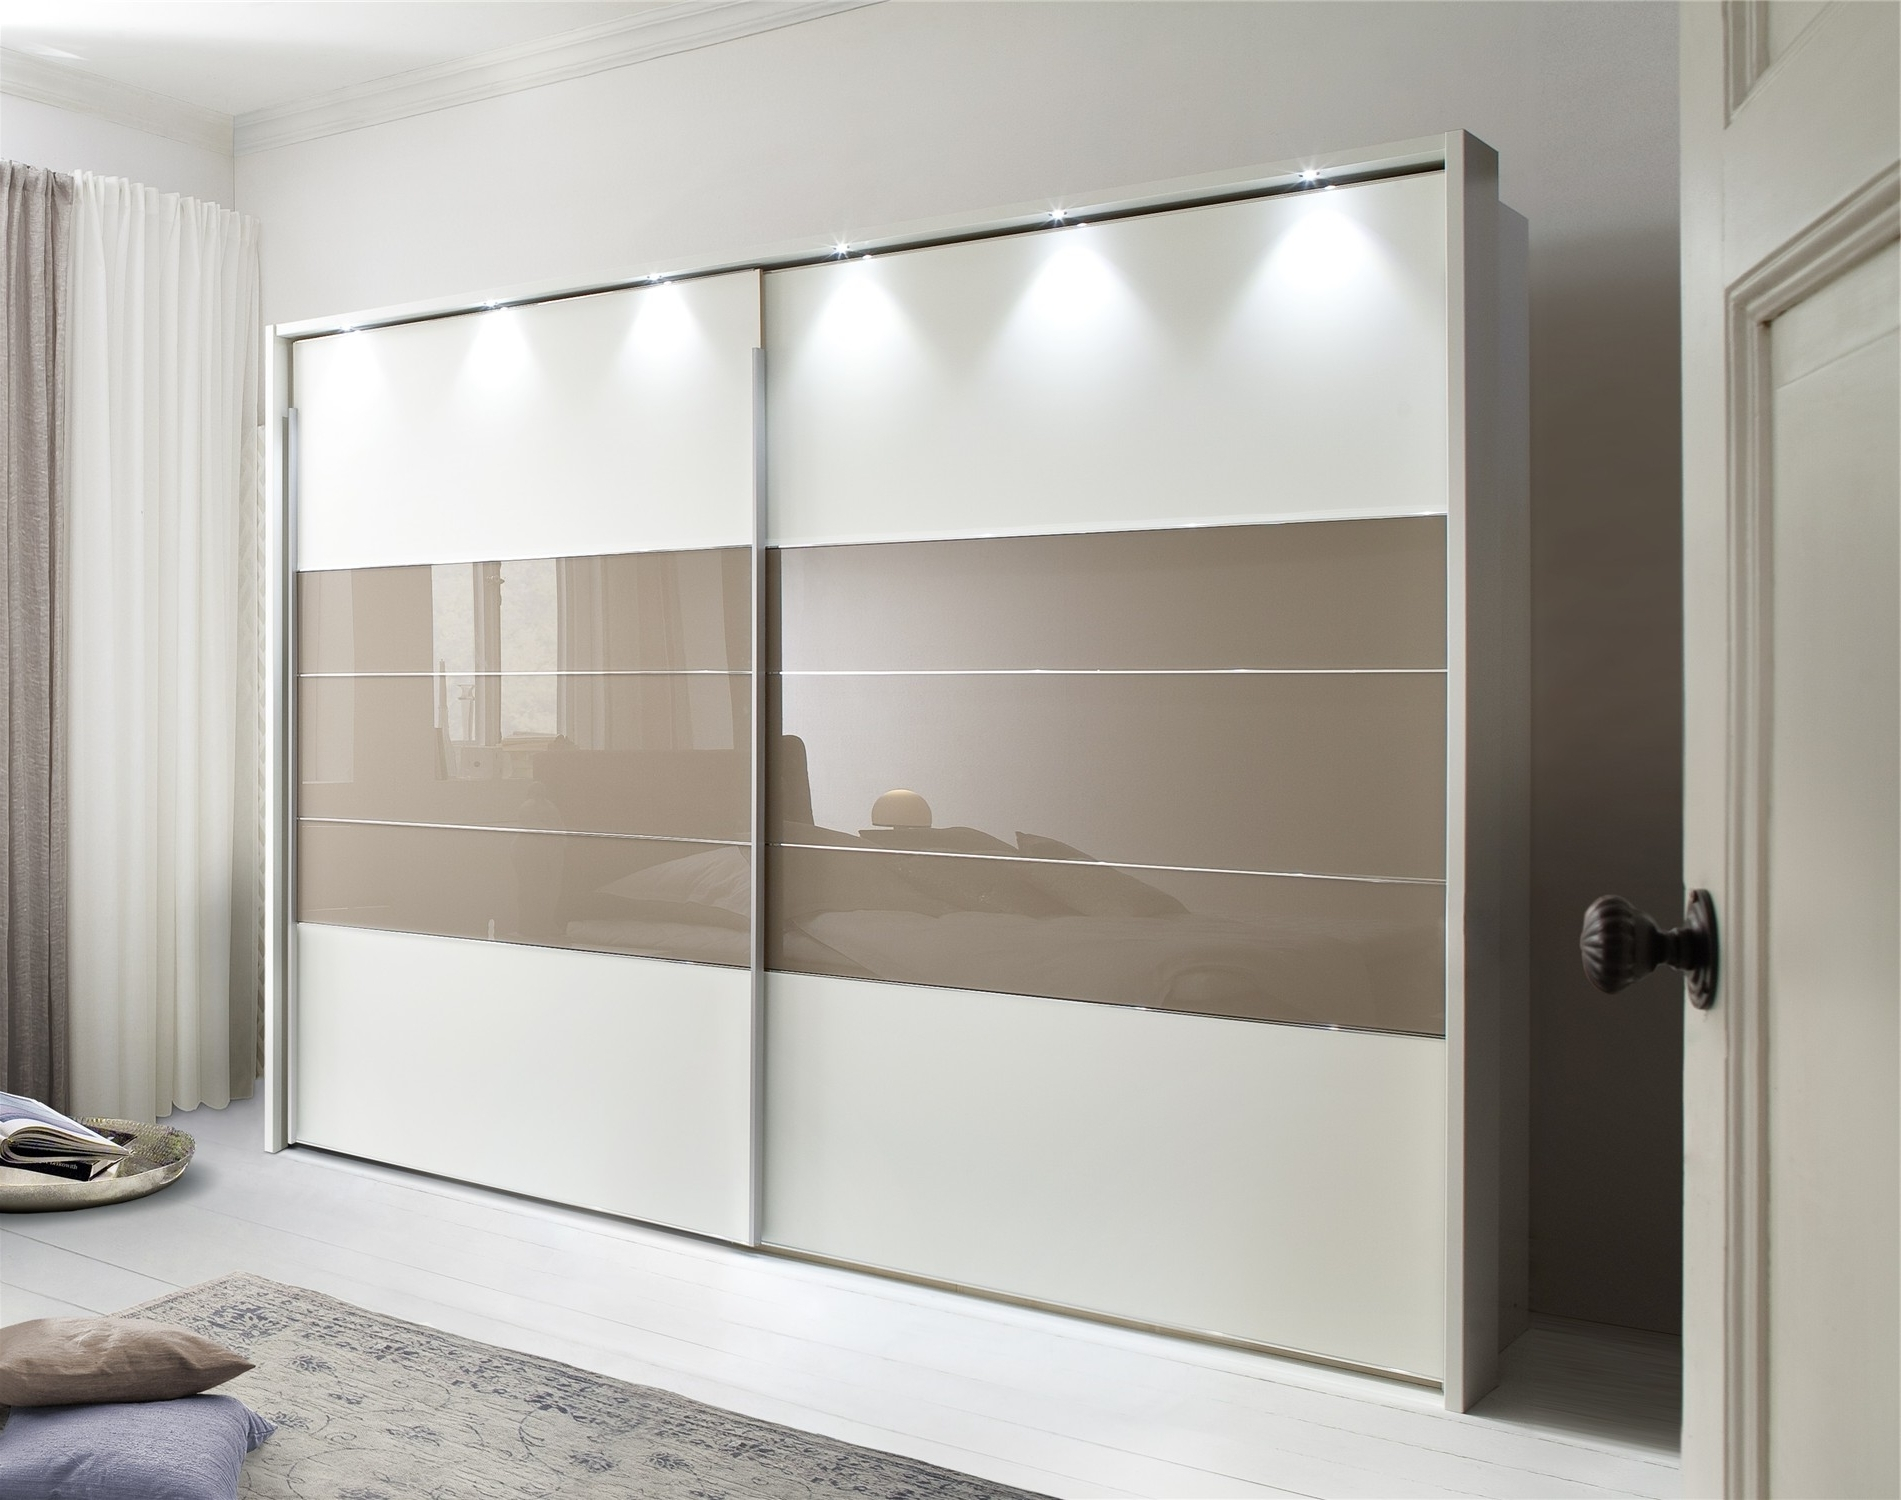 Current Double Wardrobes With Mirror In Mirror Design Ideas: Wood Glass Wardrobe With Mirror Sliding Doors (View 2 of 15)